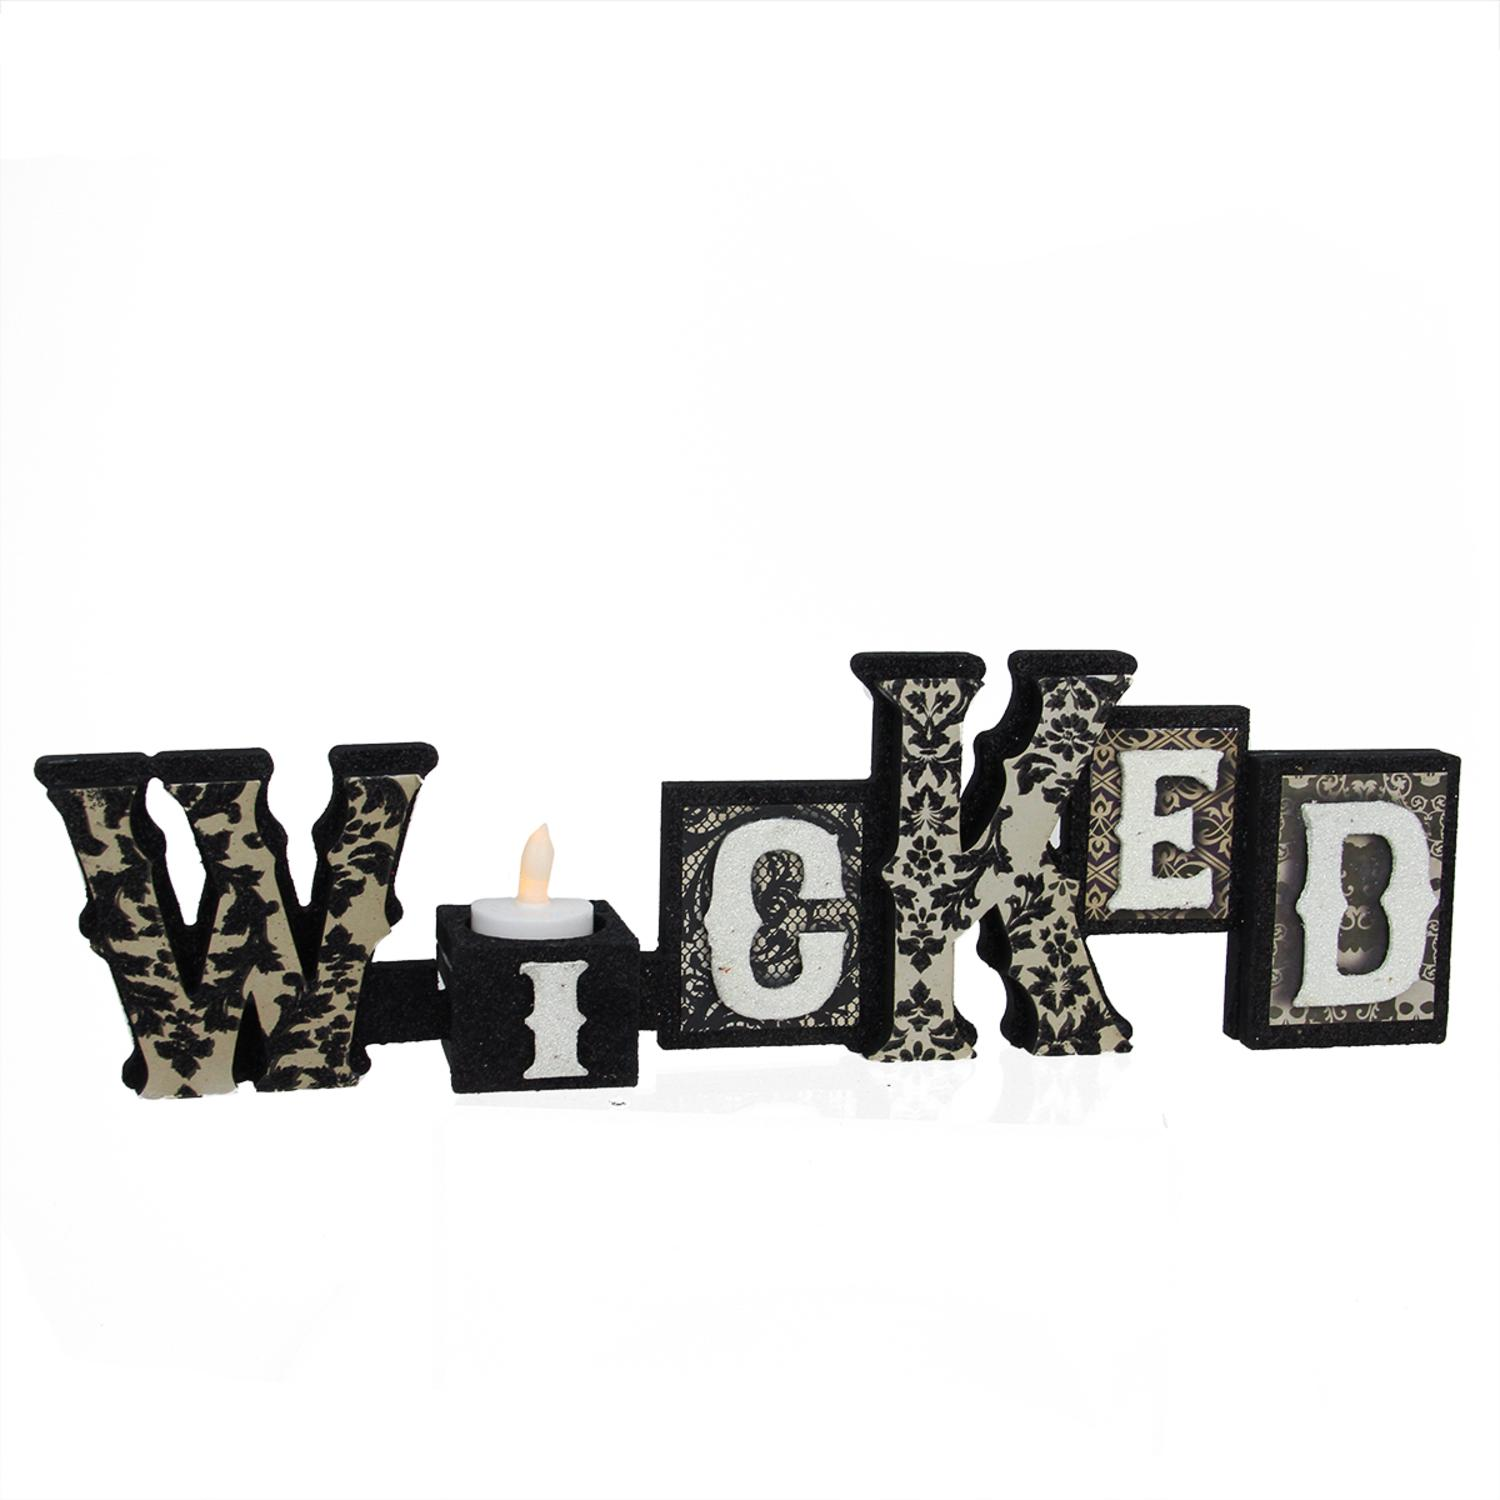 "16`"" Black and White Glittered ""Wicked"" Decorative Halloween Candle Holder by Allstate"